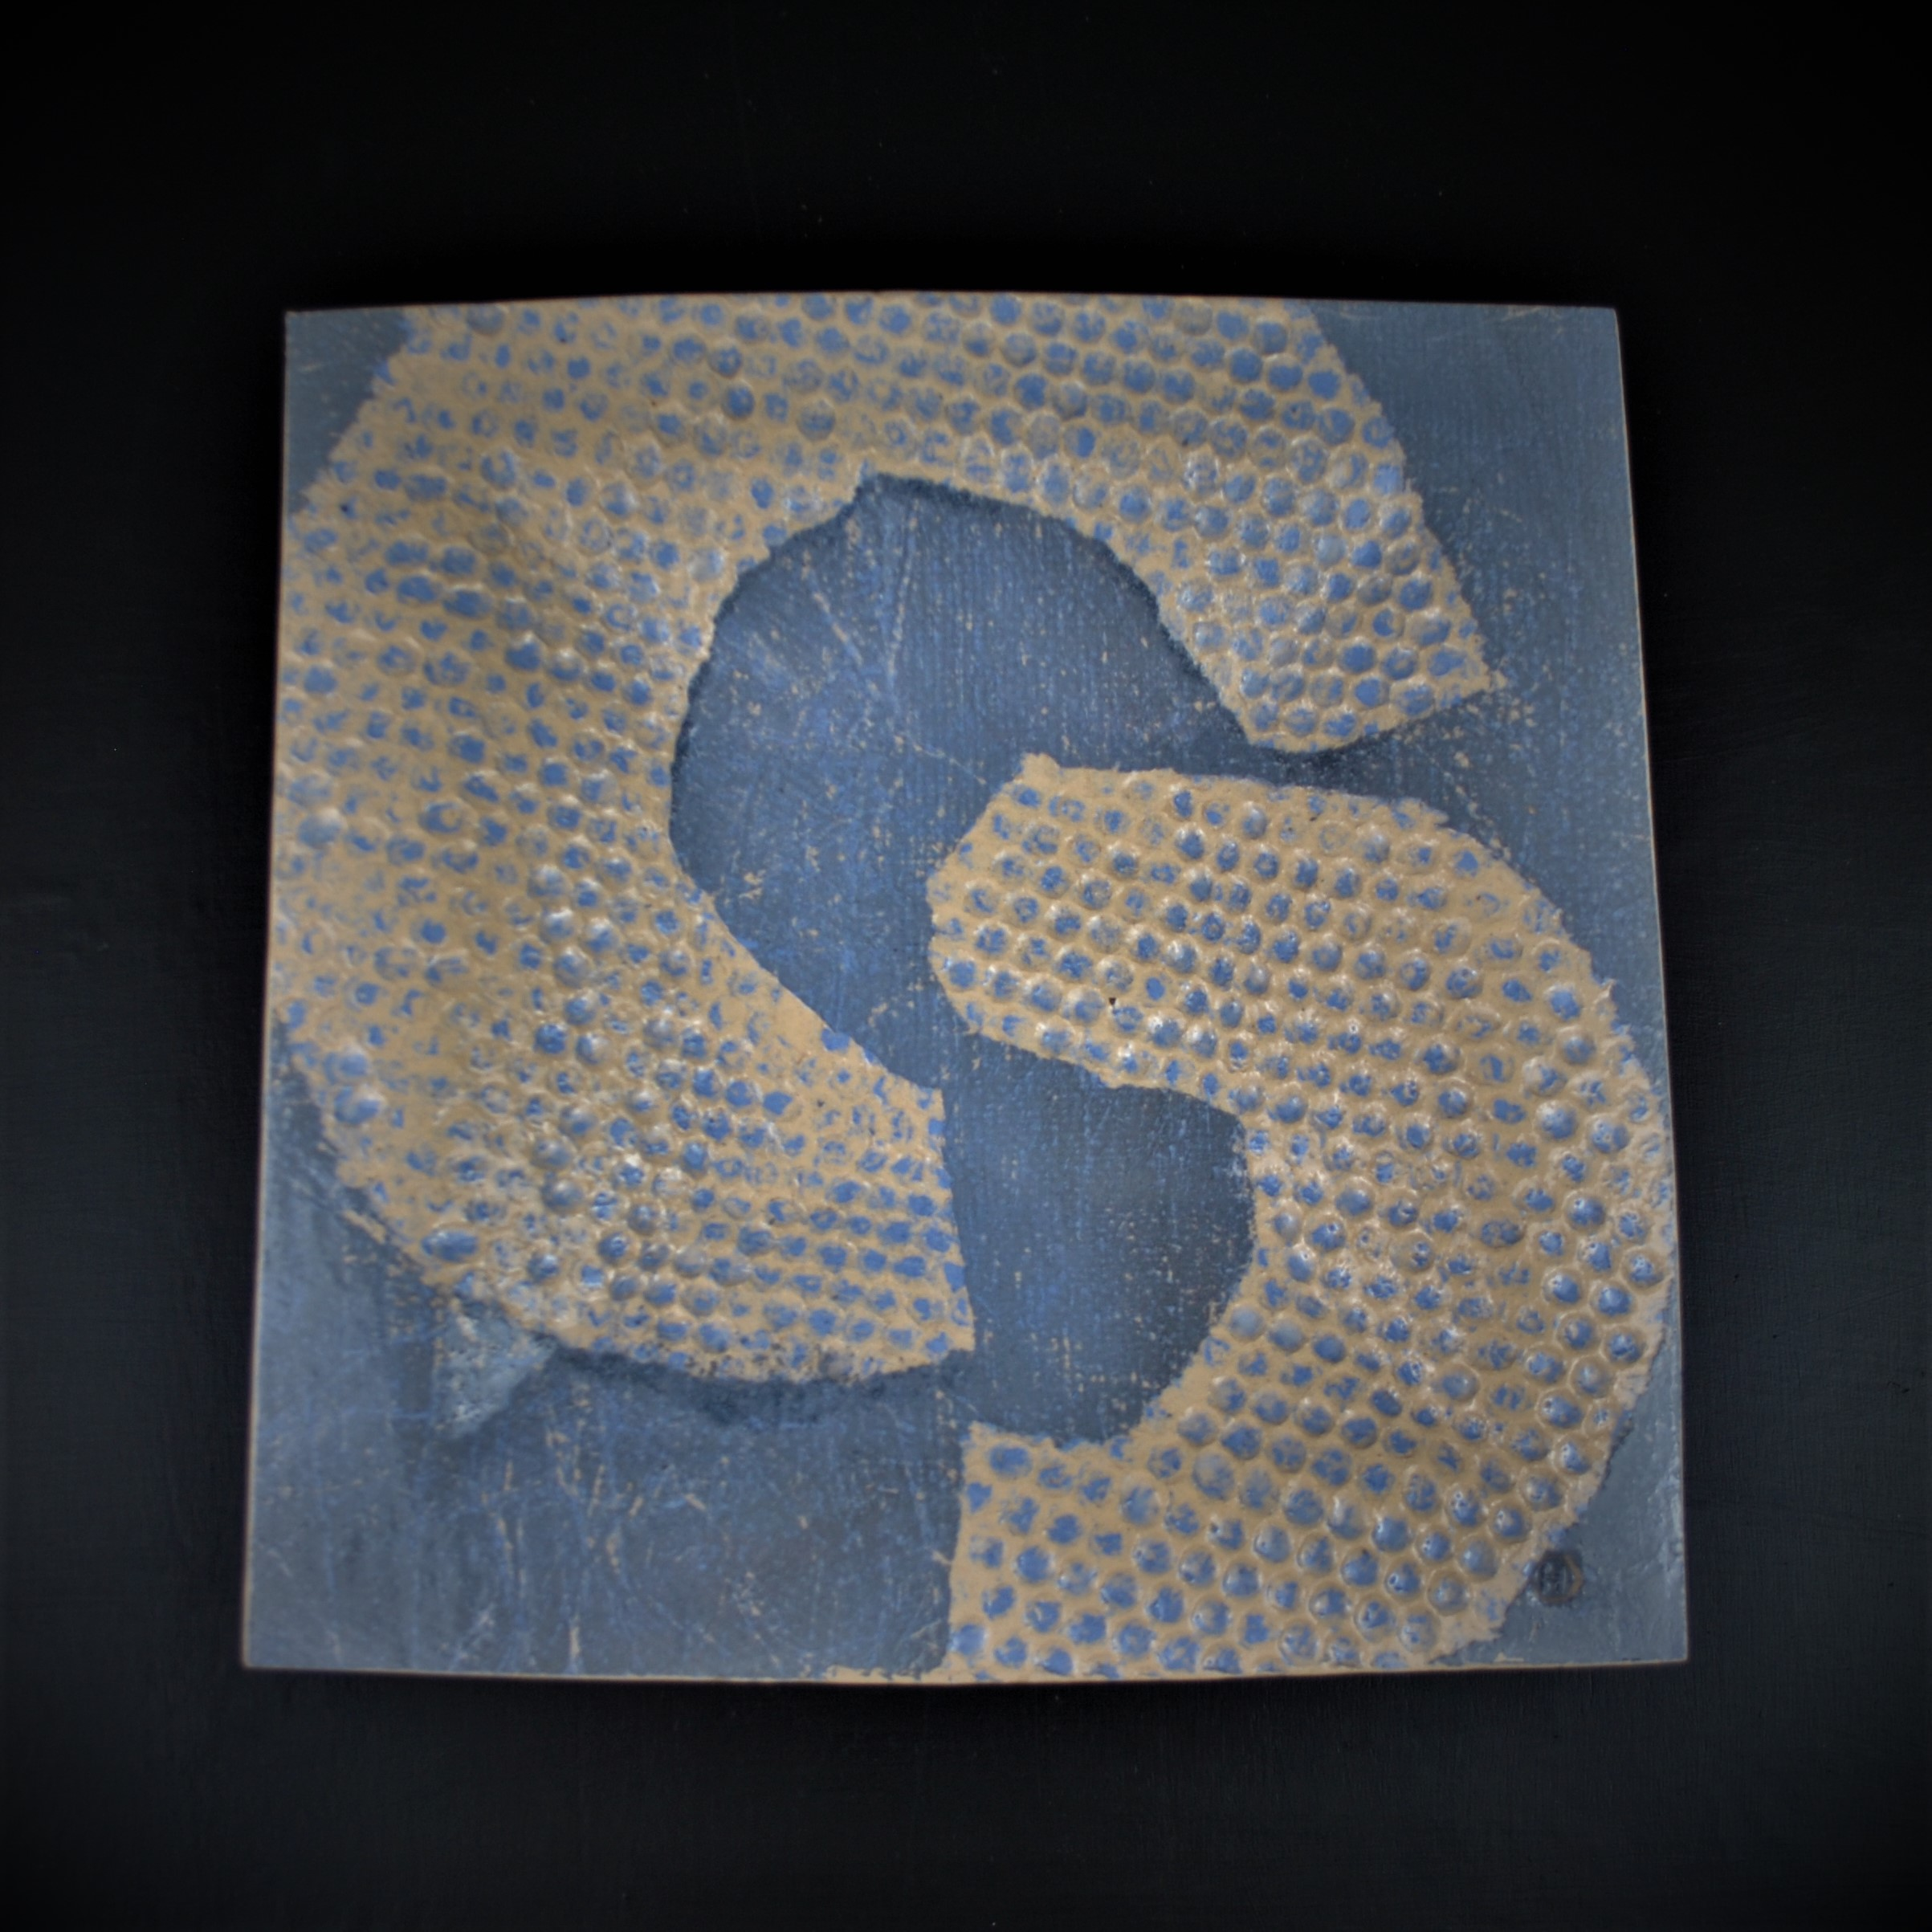 Dave Harper 2019 Cup&Ring series. Large platter in blue & grey. 33cm x 33cm on black background (Square edit) DSC_6311 (2).JPG